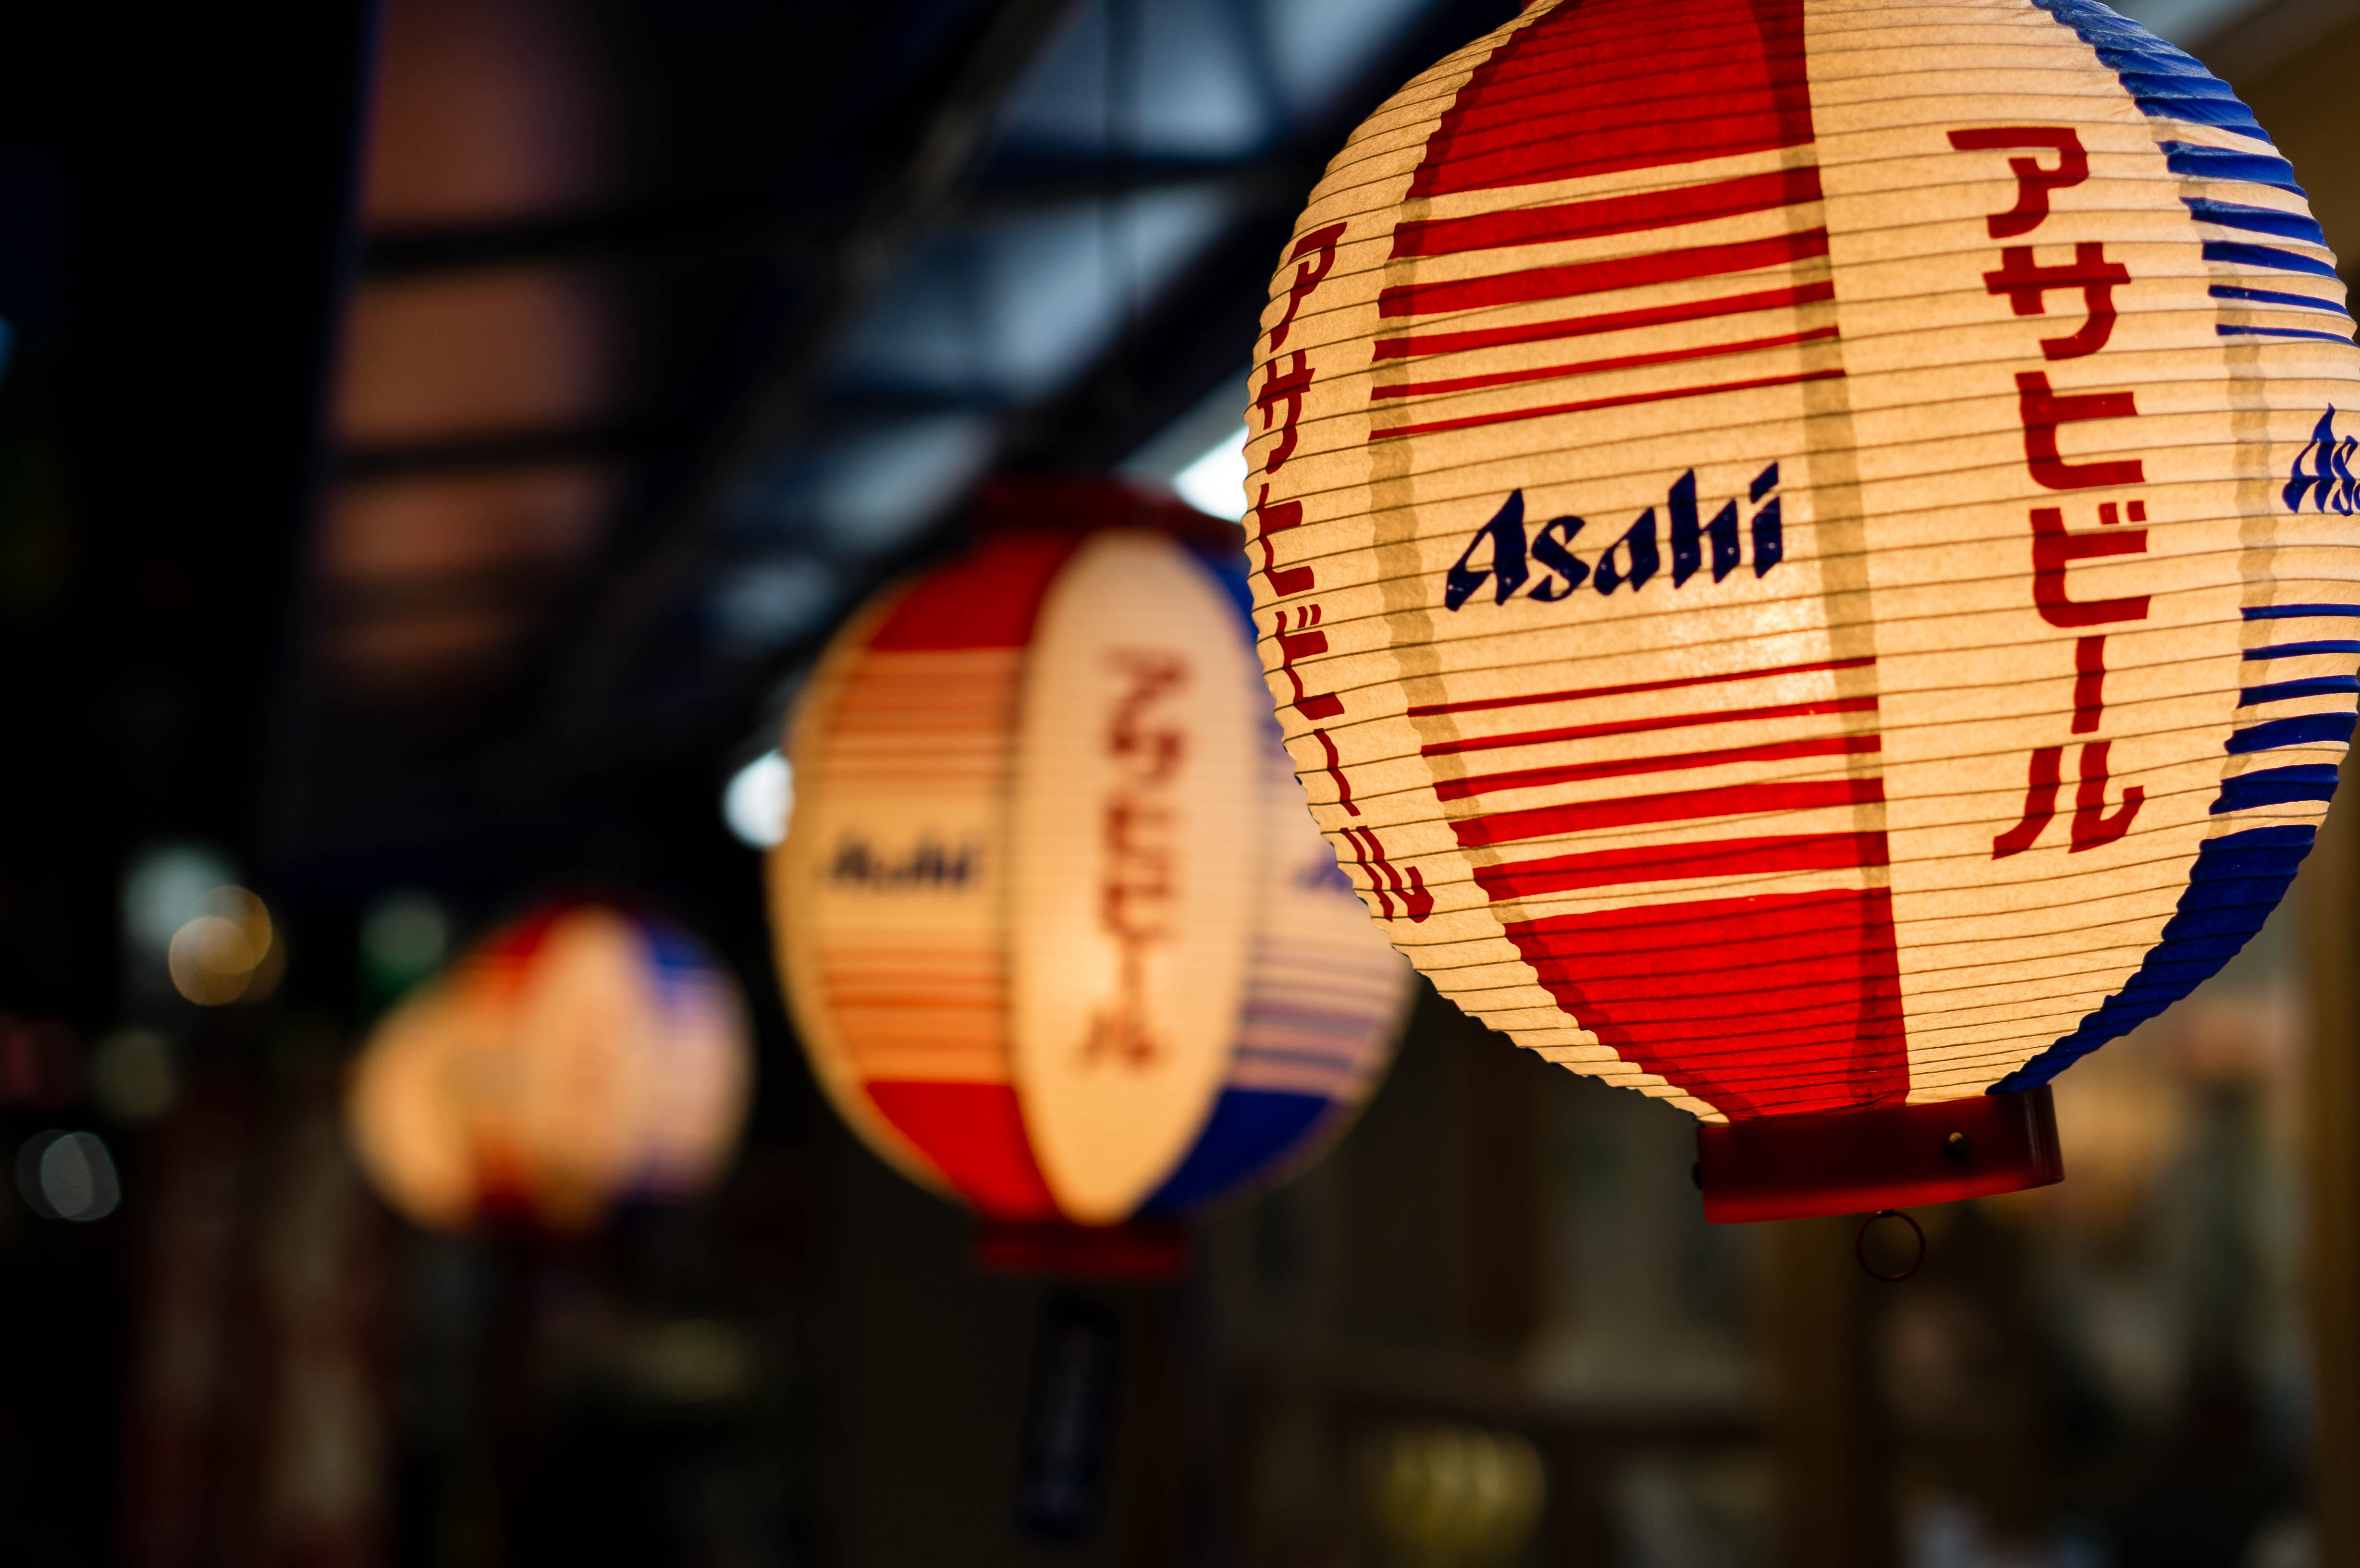 selective focus photography of white and red Asahi lantern